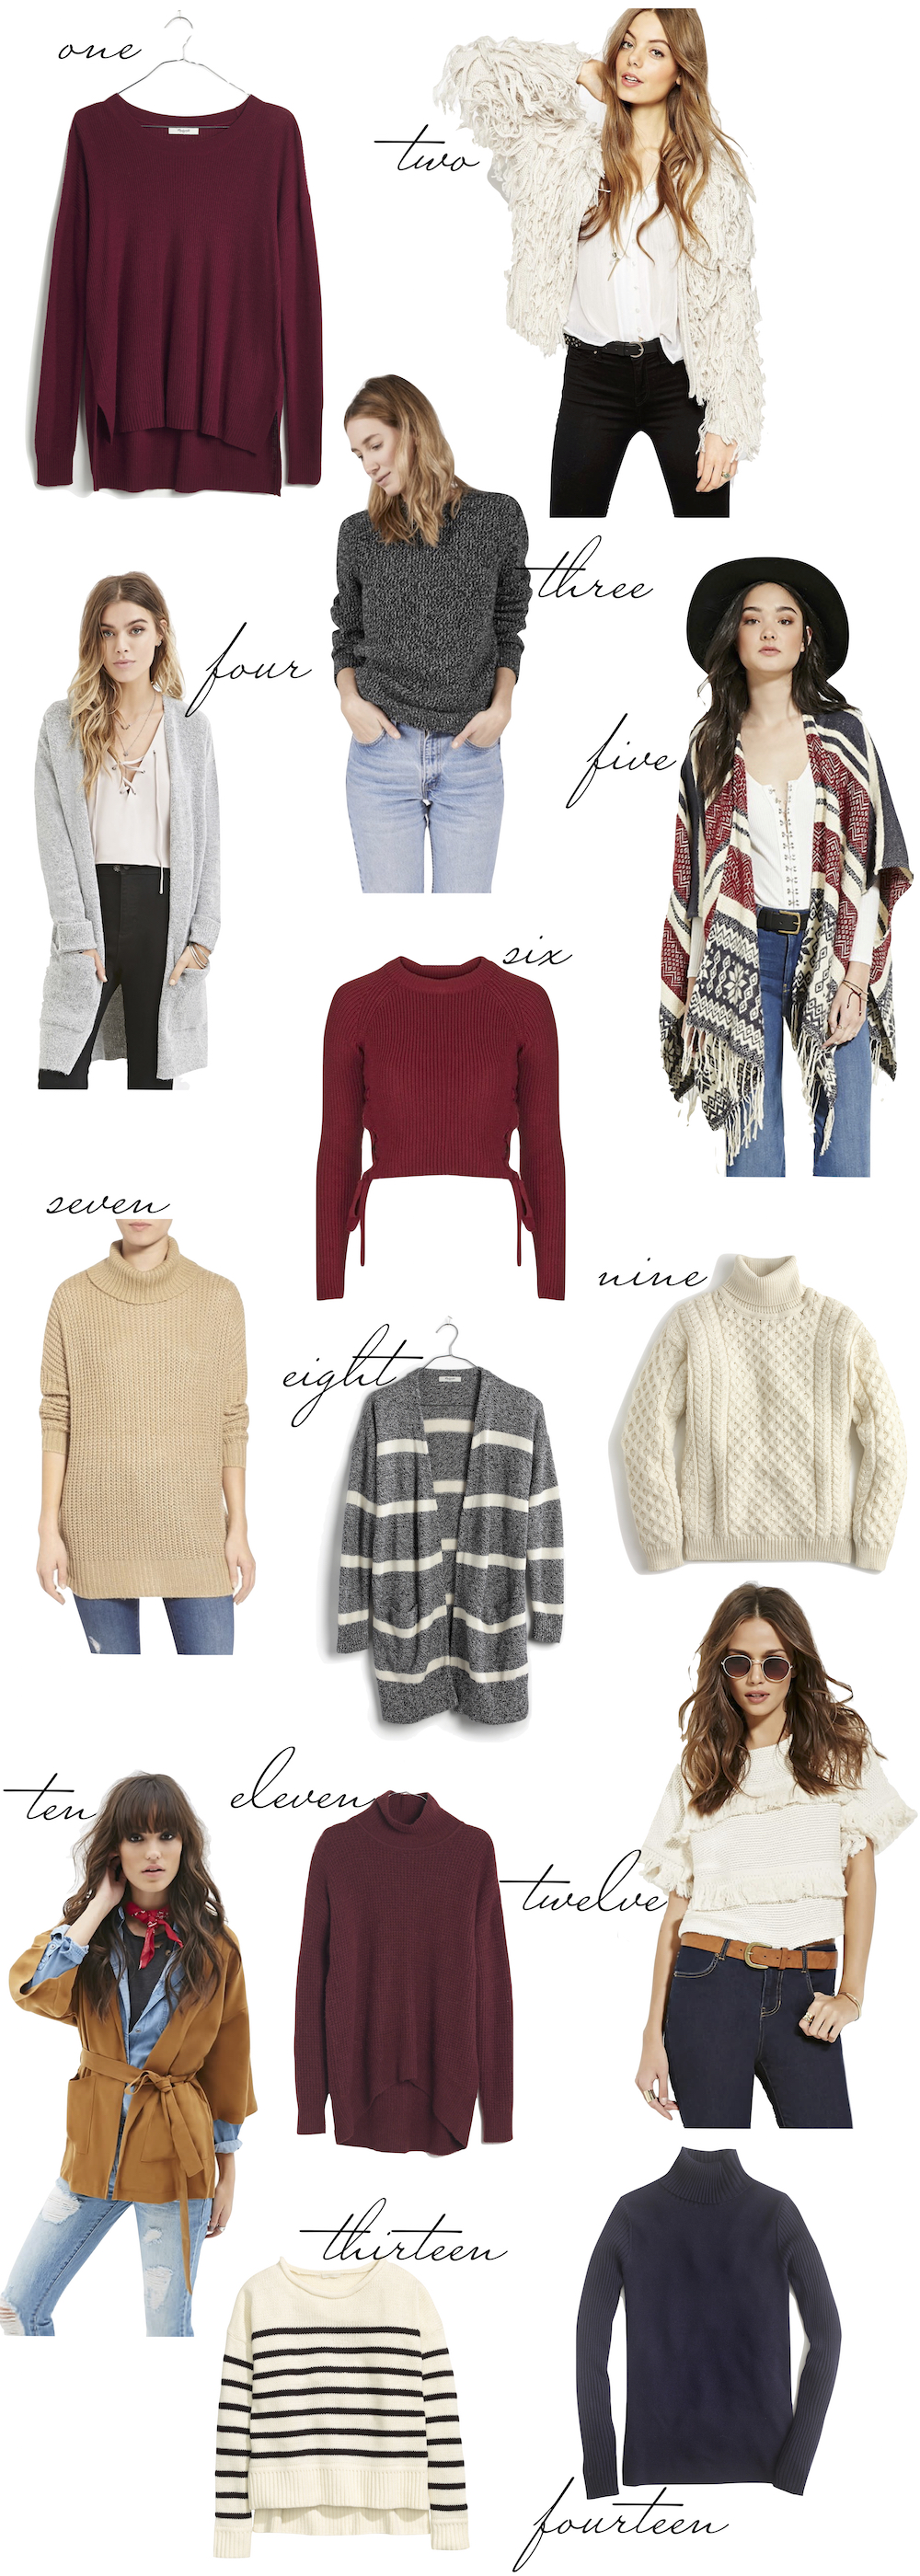 The Best Under $100 Sweaters... by Kelly Burns for The Stripe.